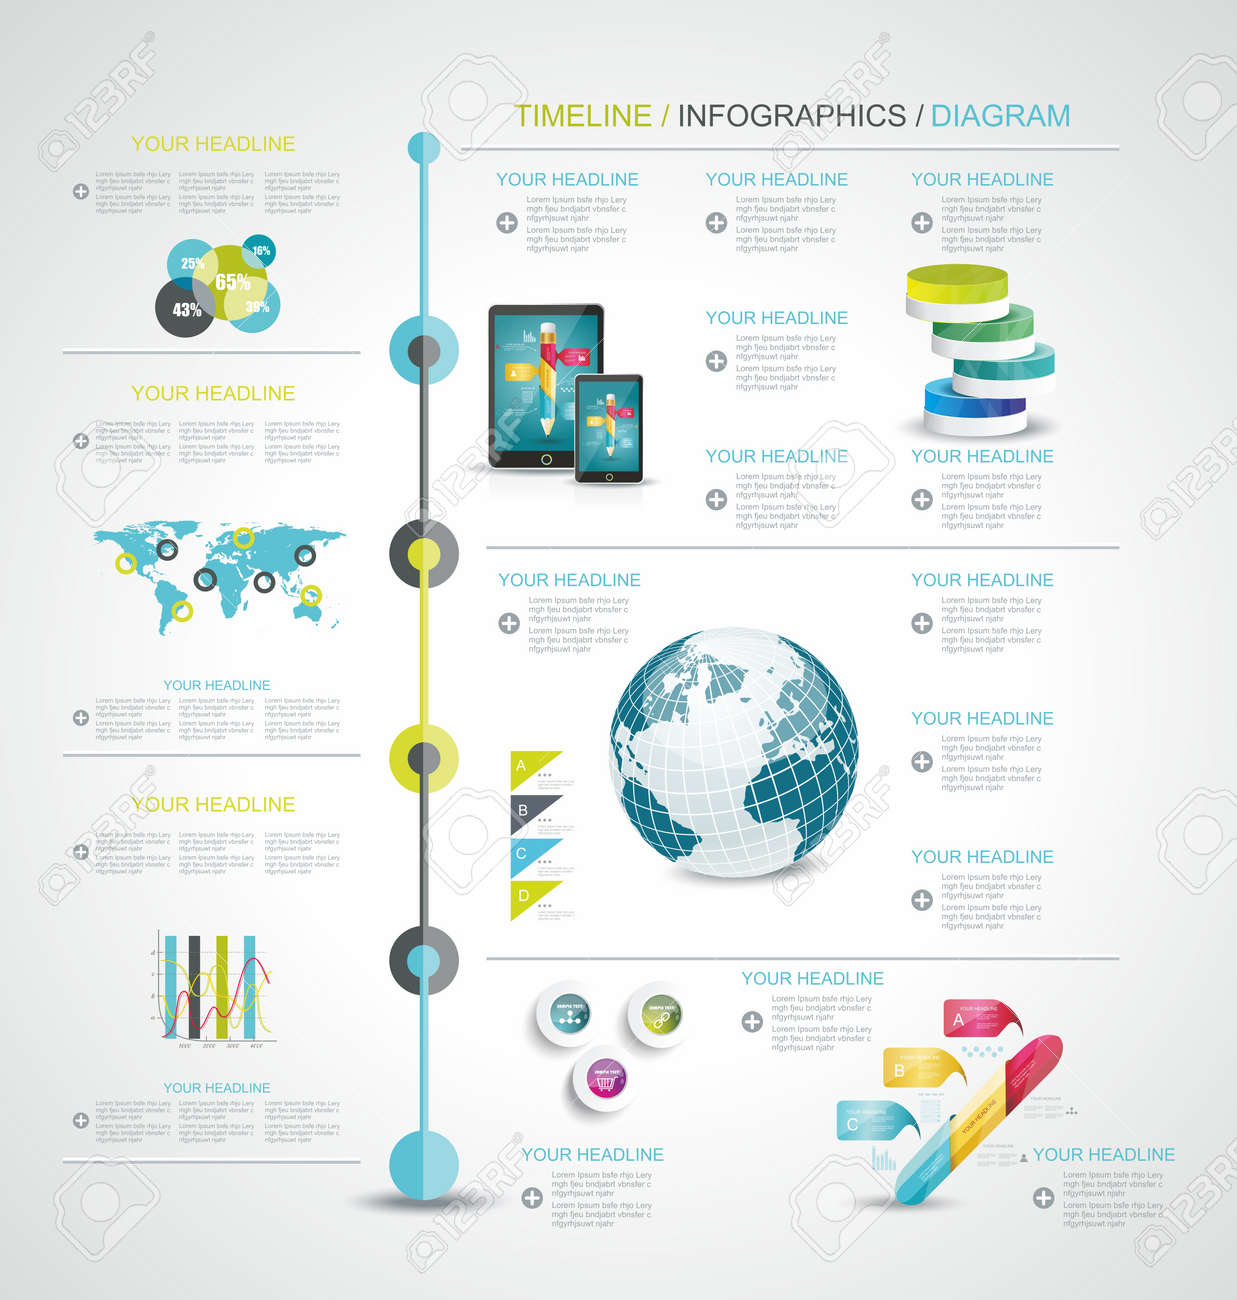 Timeline Design Template With World Map Web Buttons And Paper - Timeline design template